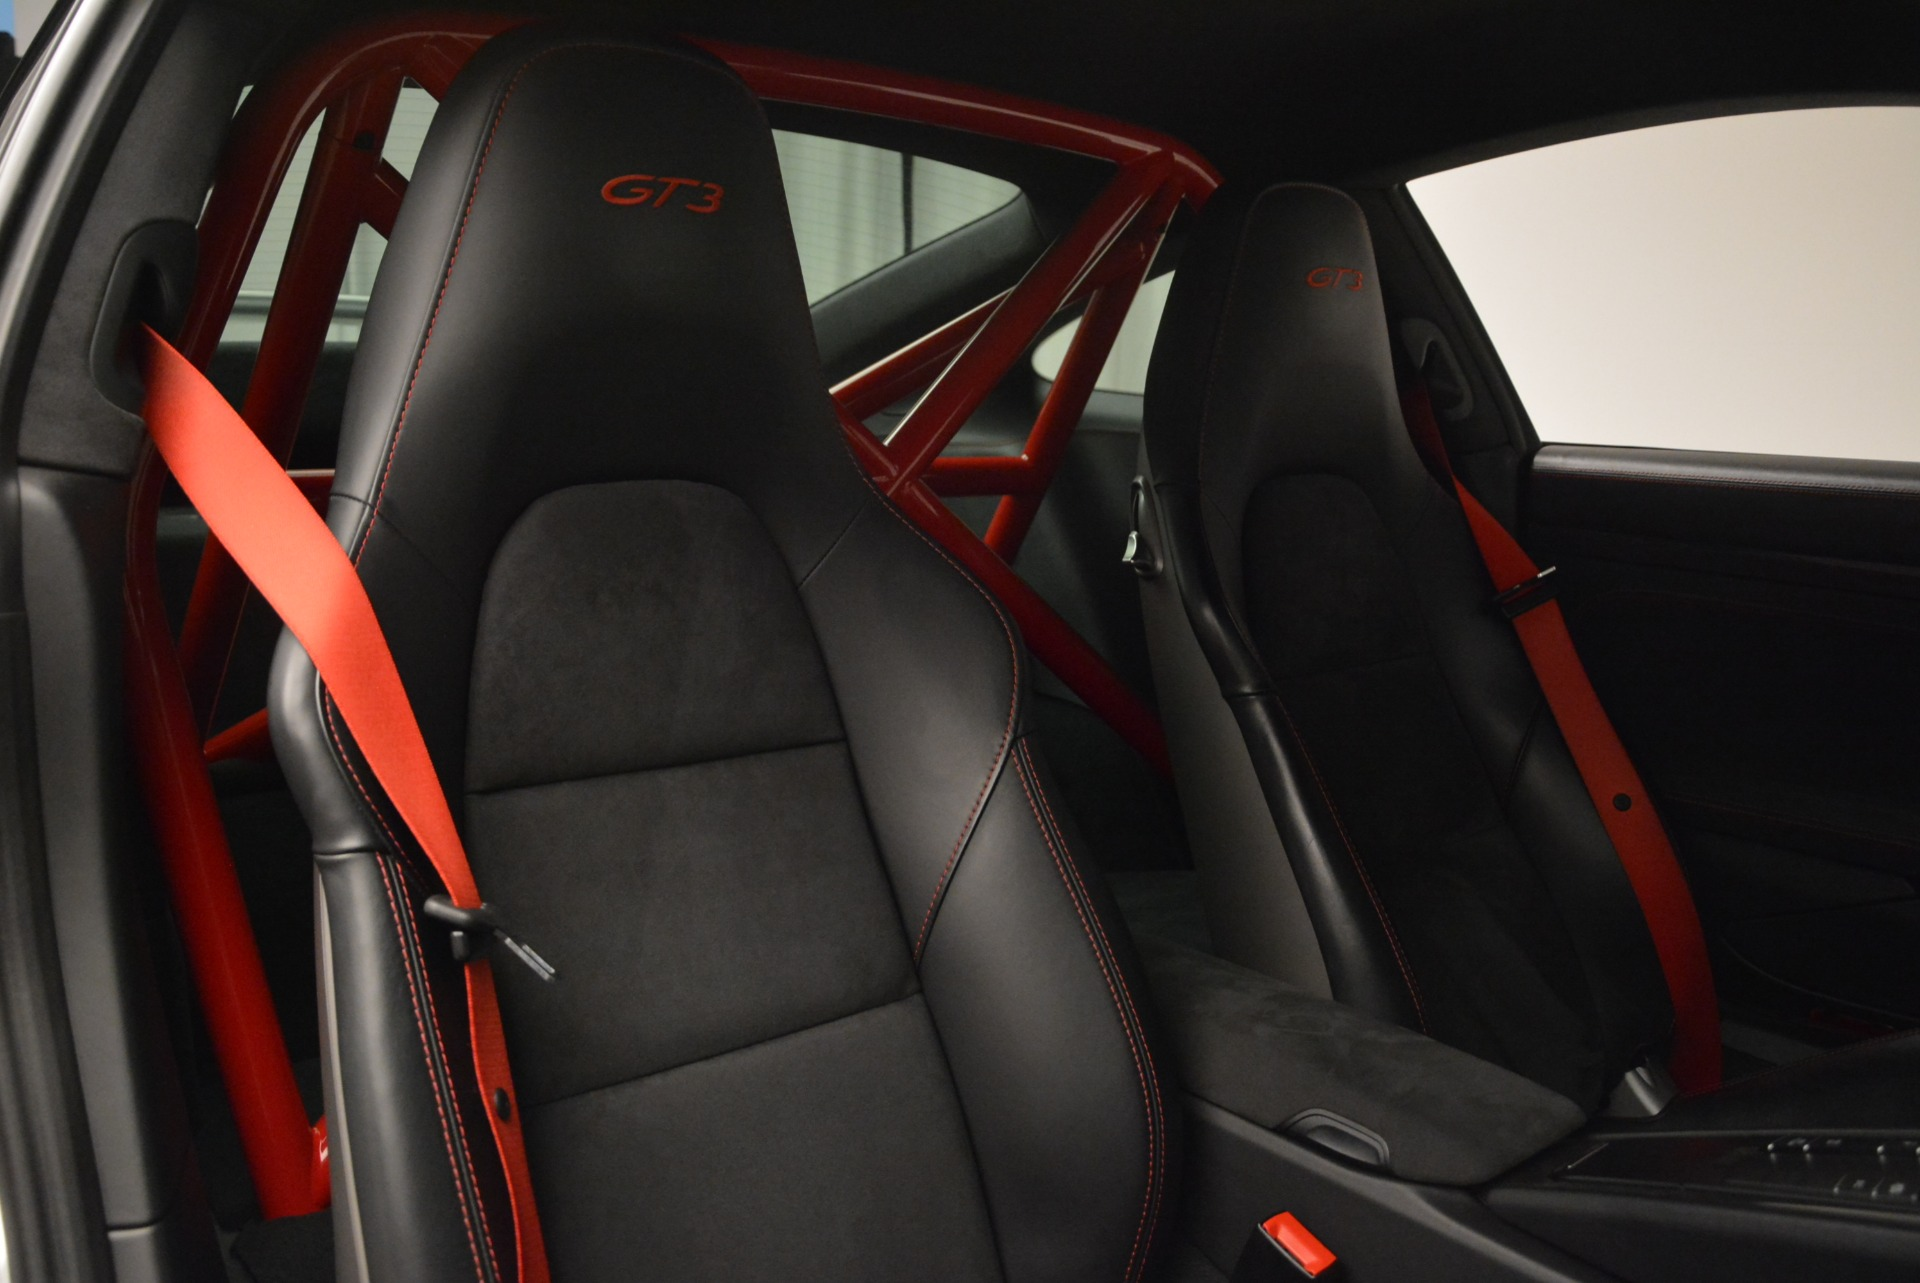 Used 2015 Porsche 911 GT3 For Sale In Greenwich, CT 2196_p26